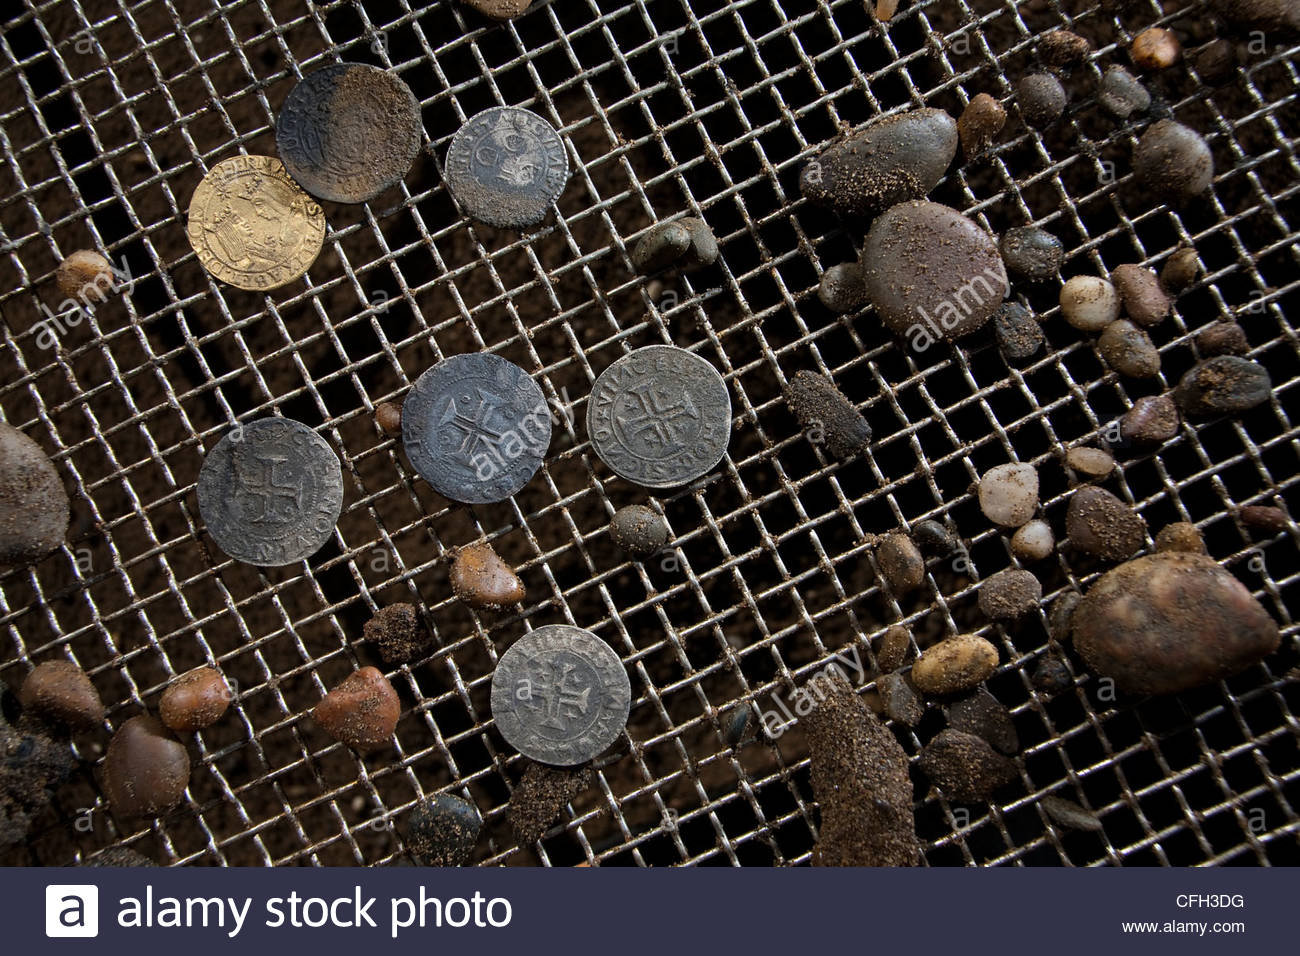 Spanish, Portuguese, Venetian, Florentine, and Moorish coins found in the ship's coffers. - Stock Image